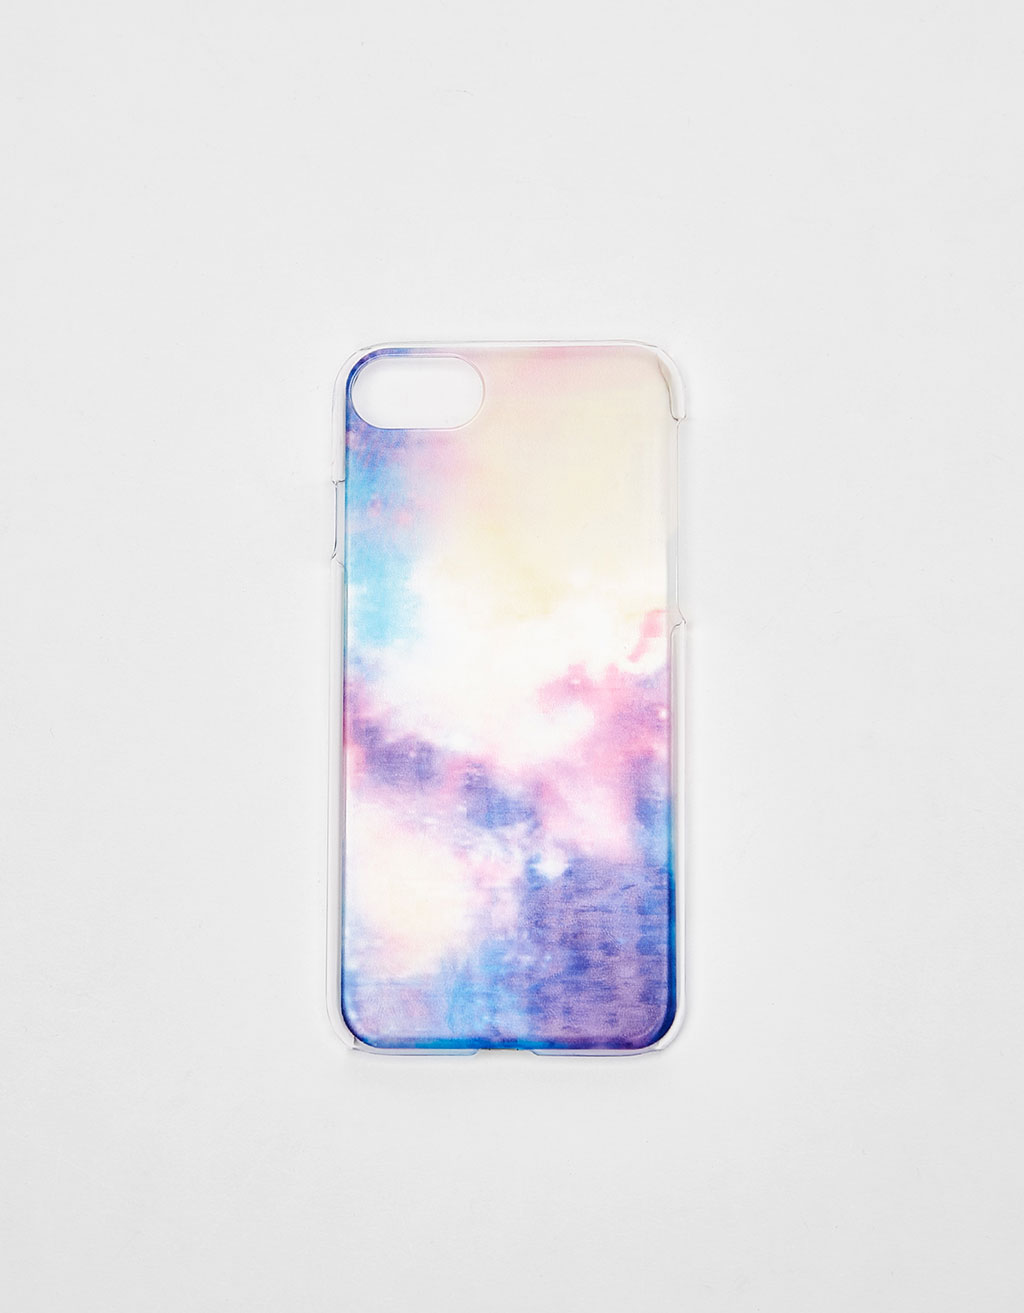 Transparent cosmic iPhone 6/6s/7 case